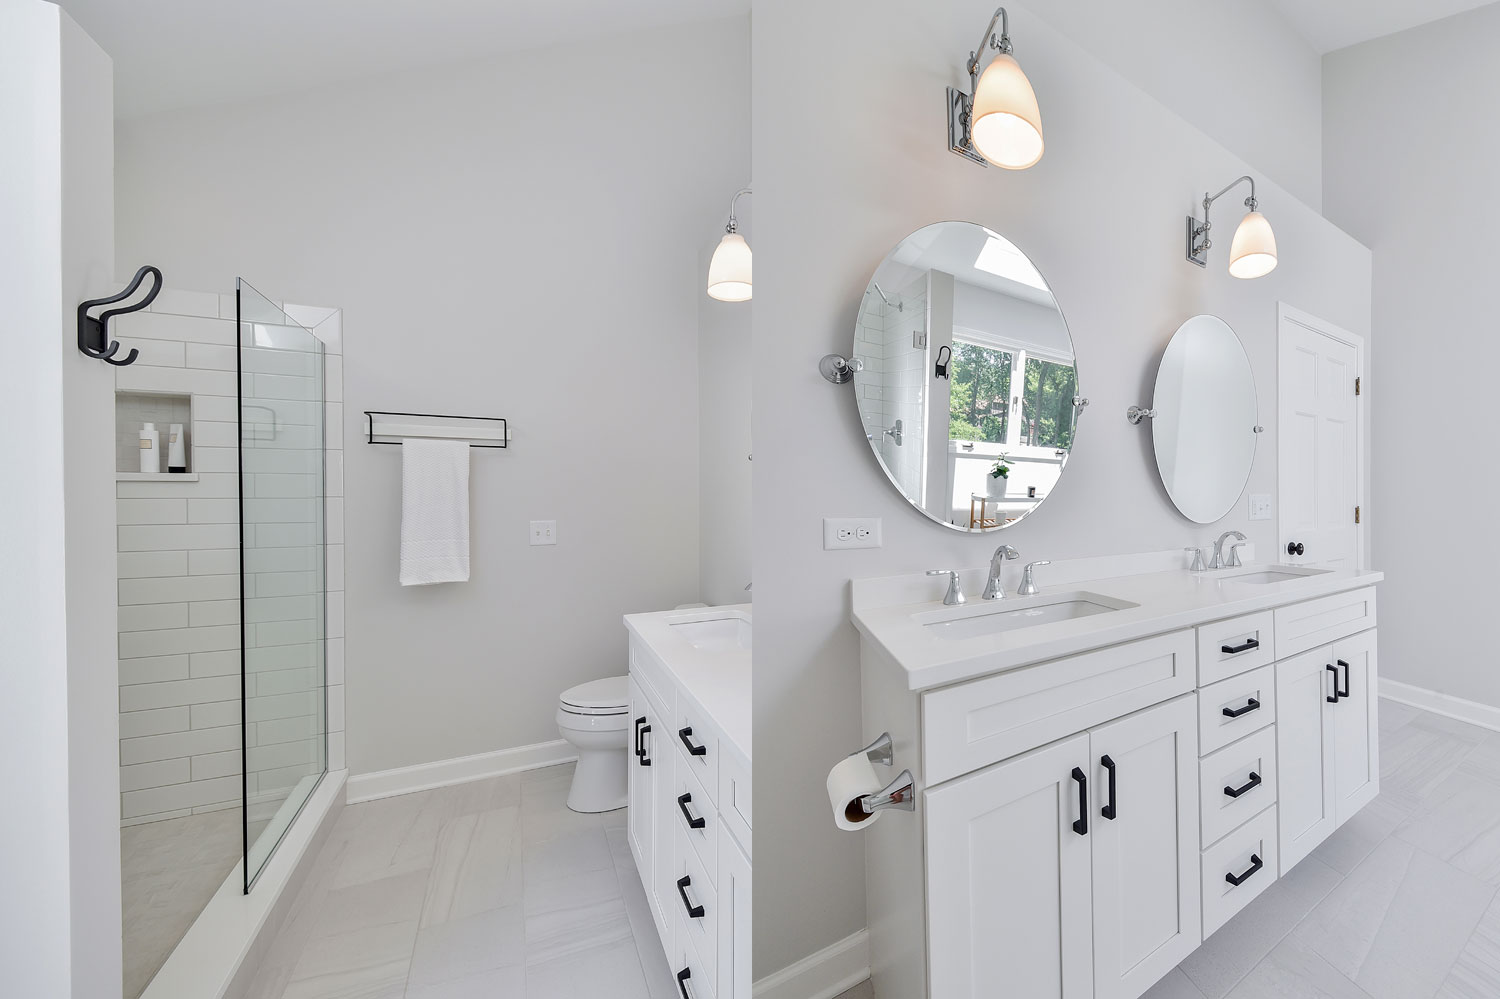 Brad Leas Master Bathroom Remodel Pictures Home Remodeling - Bathroom remodel design services